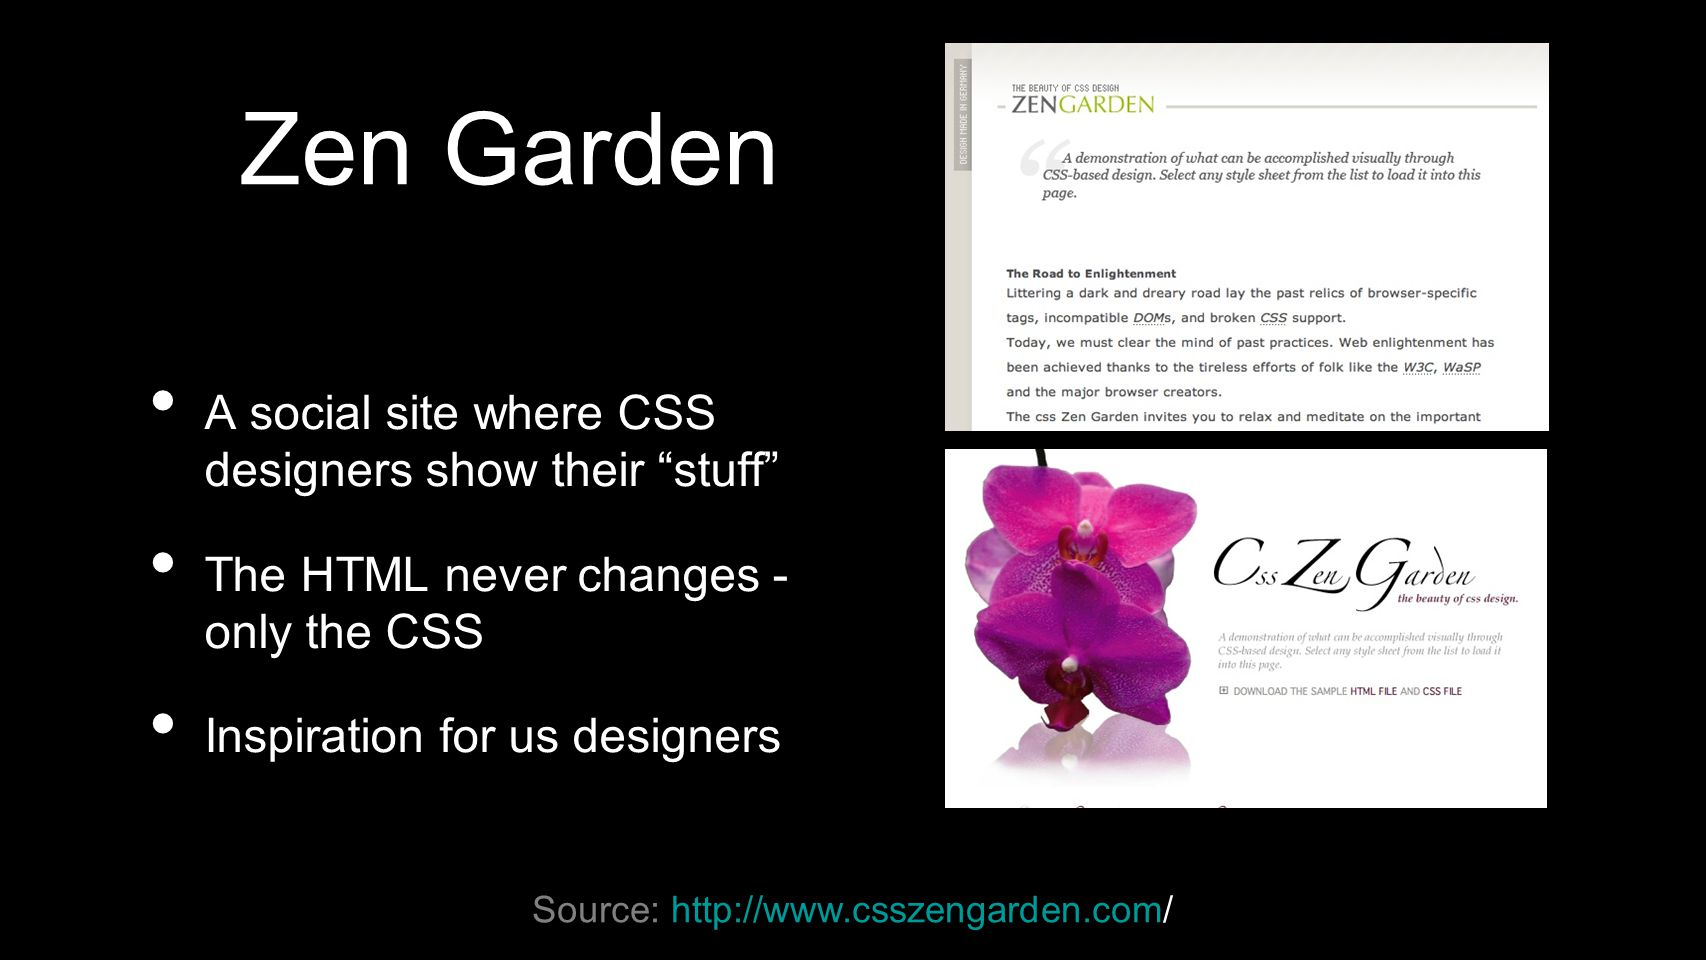 Zen Garden A social site where CSS designers show their stuff The HTML never changes - only the CSS Inspiration for us designers Source: http://www.csszengarden.com/